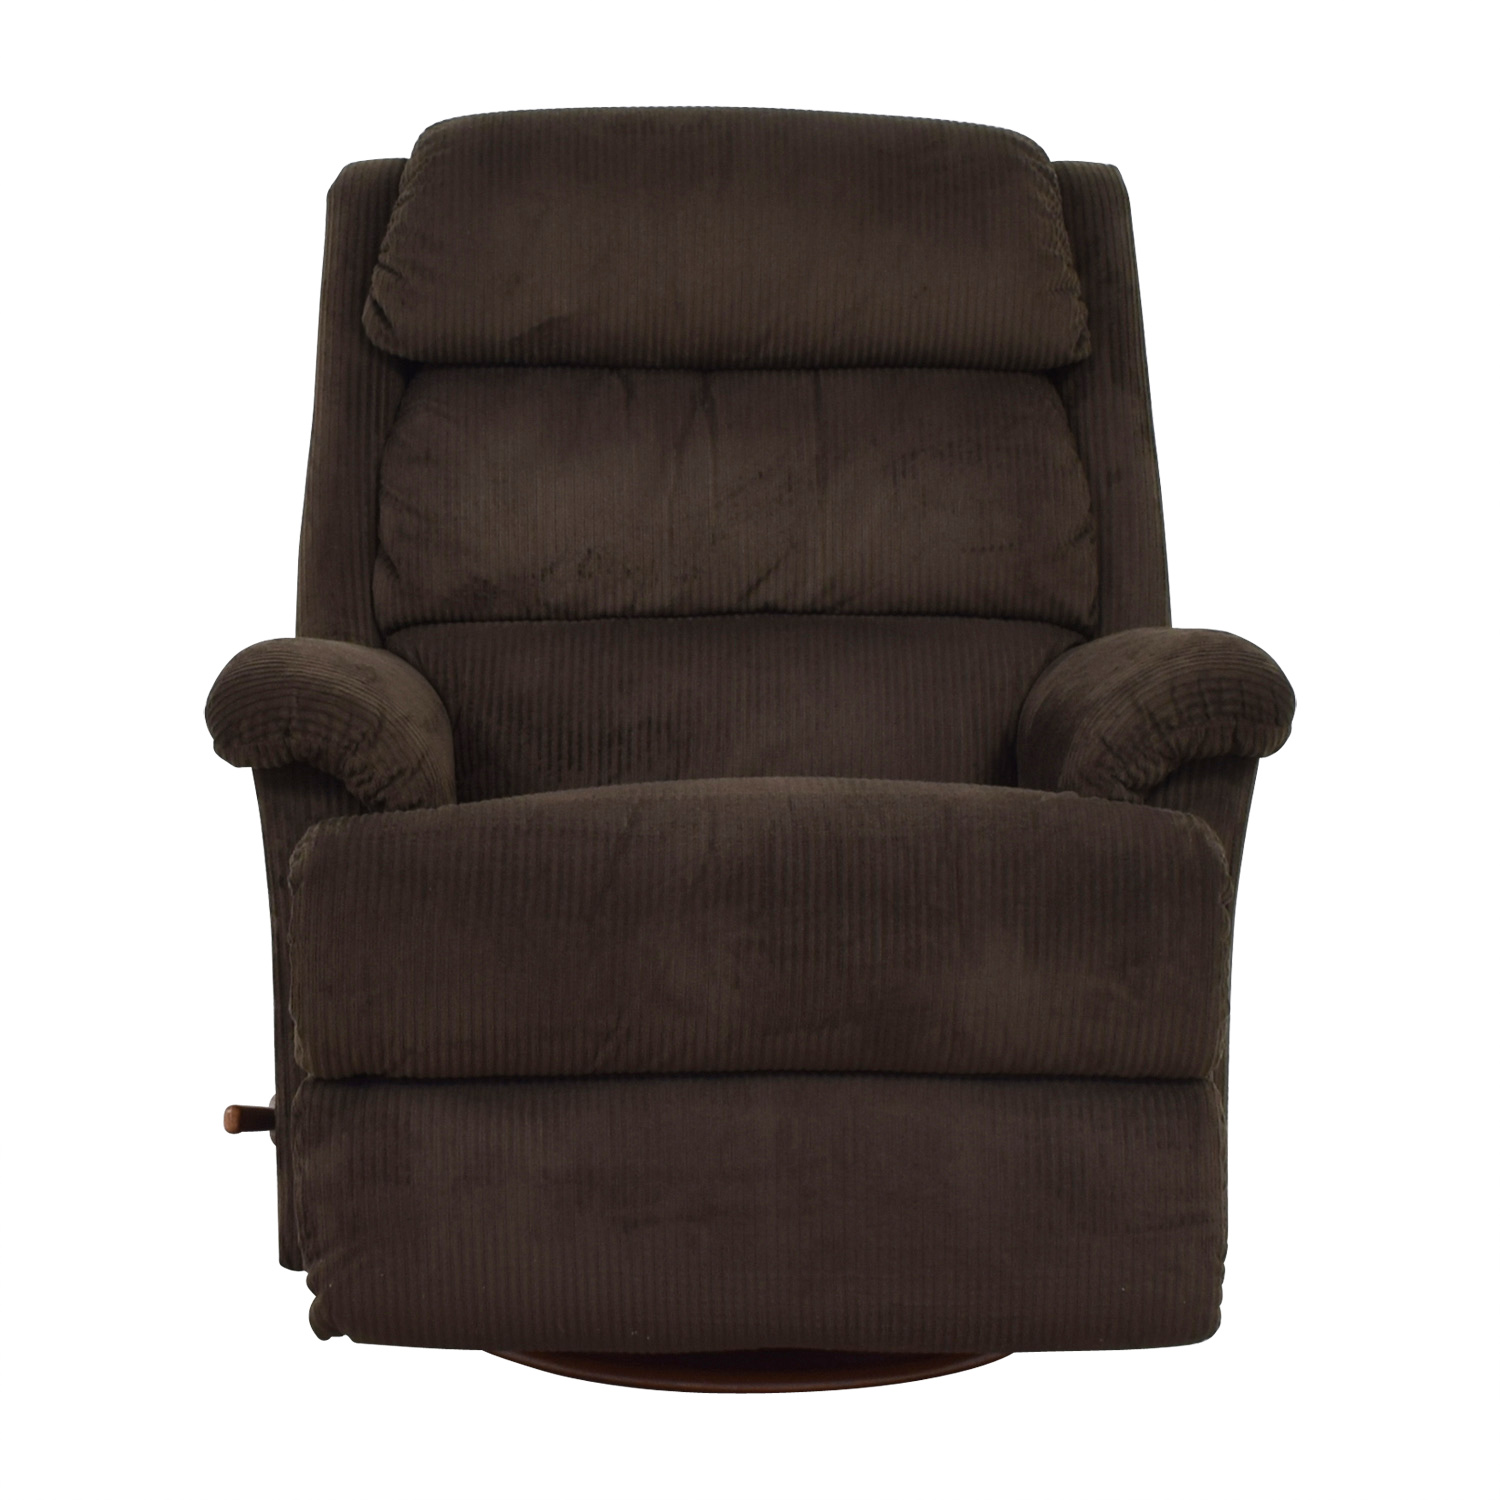 buy Lay-Z-Boy Brown Recliner Lay-Z-Boy